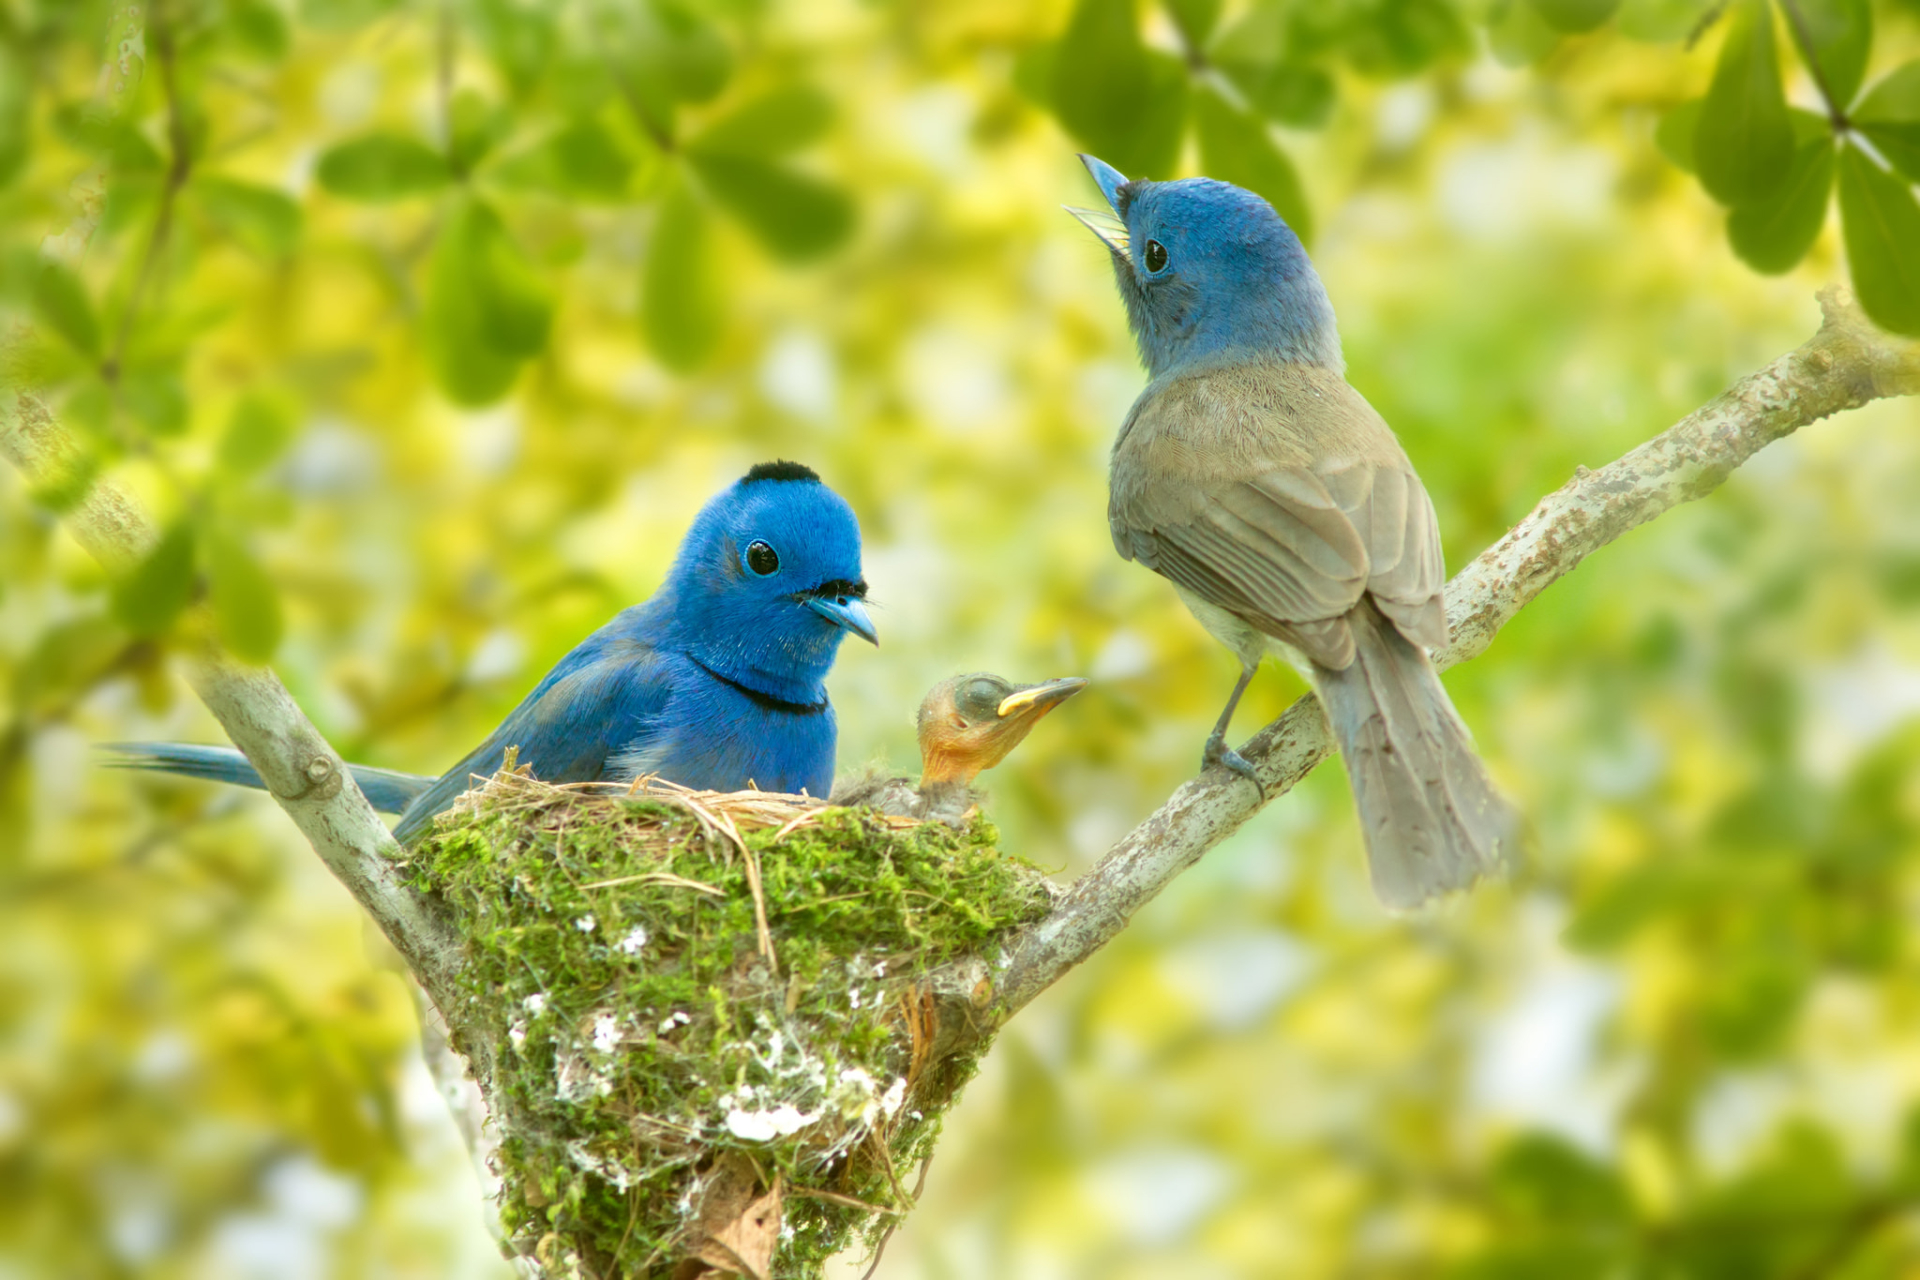 cute birds with really amazing colors